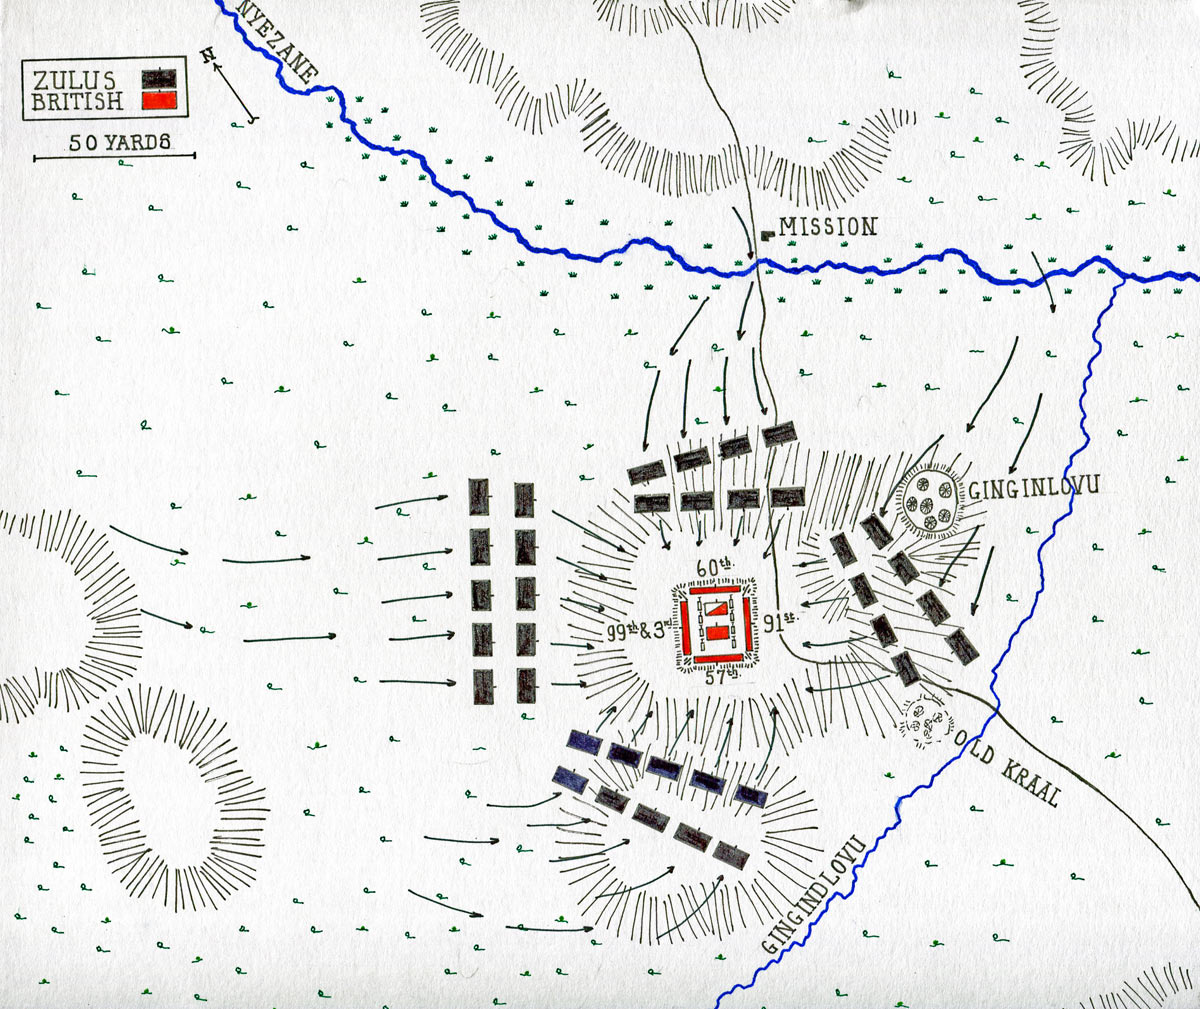 Map of the Battle of Gingindlovu on 2nd April 1879 in the Zulu War: map by John Fawkes